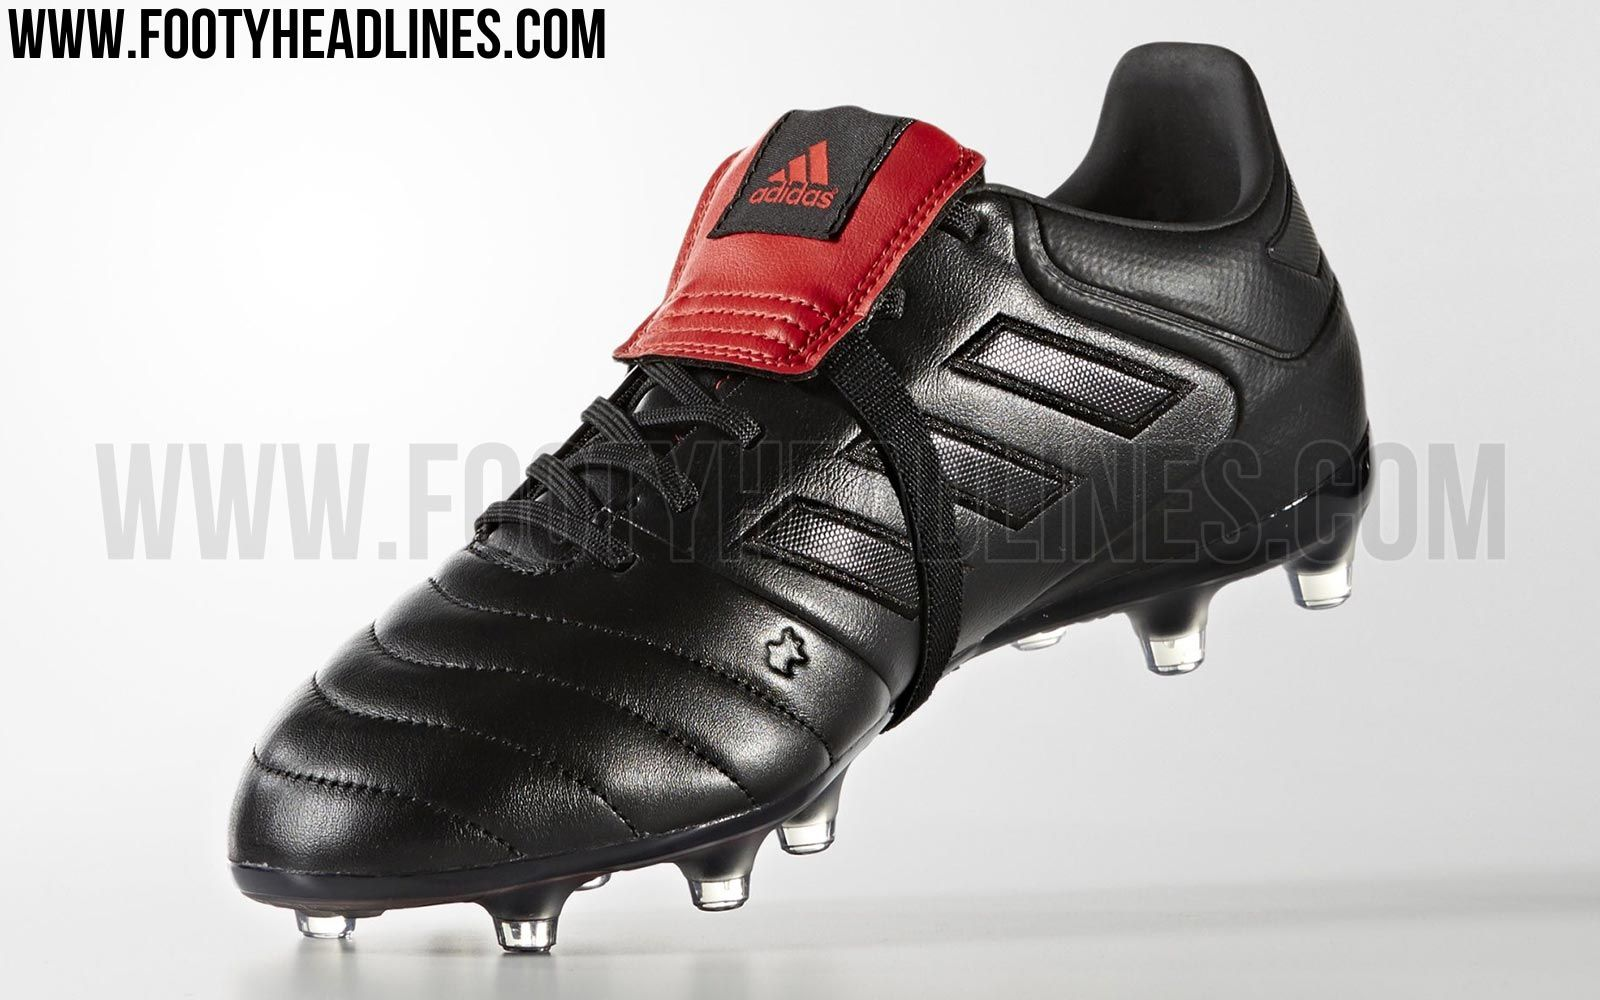 c53333ac9f70 Black / Red Adidas Copa Gloro 17 Boots Leaked - Footy Headlines ...